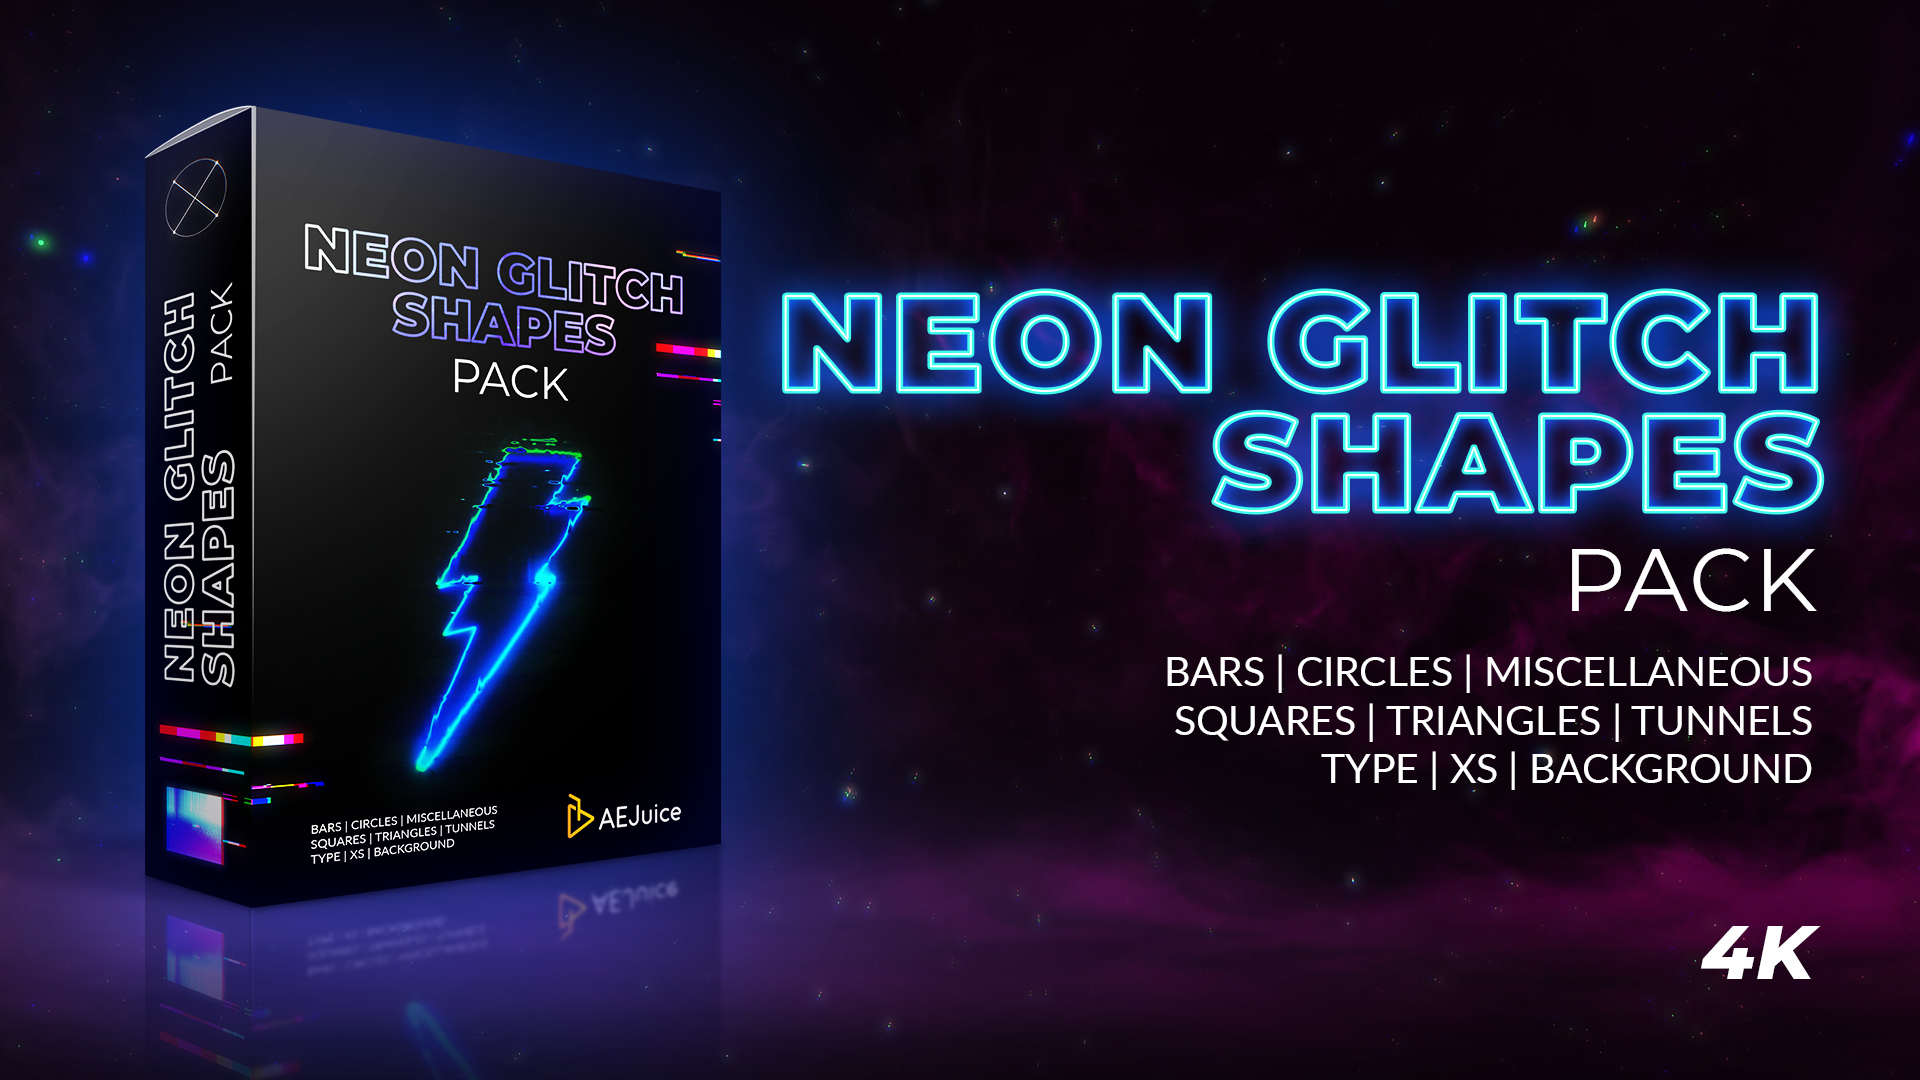 Neon Glitch Shapes